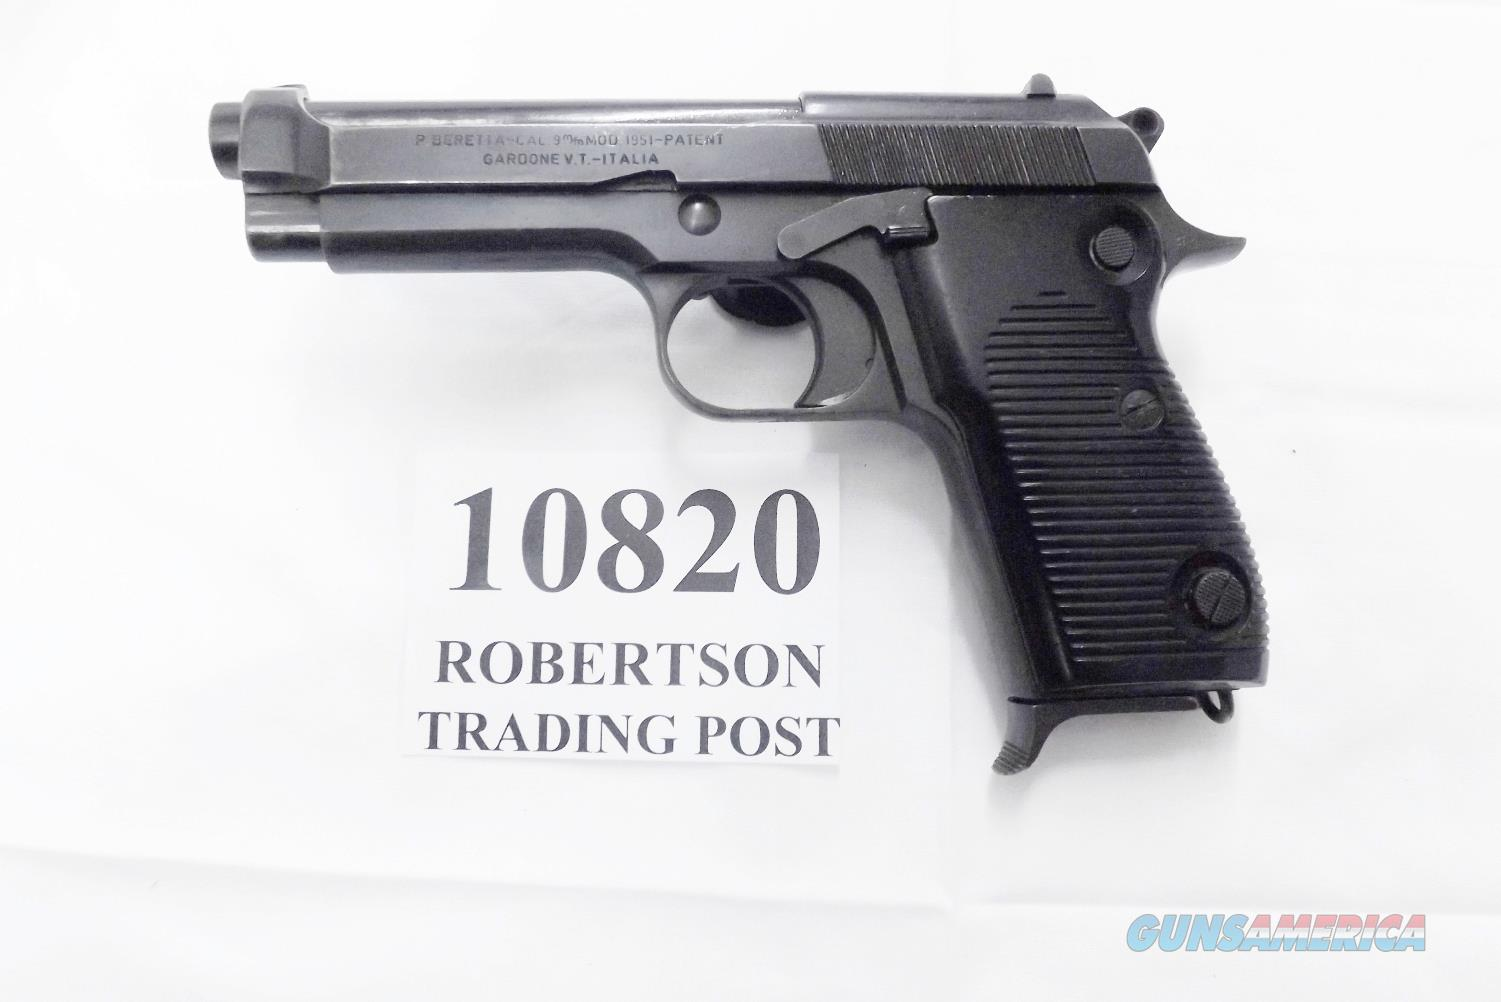 Beretta 9mm M1951 9 Shot All Steel 1964 ProductionItalian  Carabinieri Good Condition 1 Magazine C&R CA OK with Extra Magazine Special Offer   Guns > Pistols > Beretta Pistols > Rare & Collectible